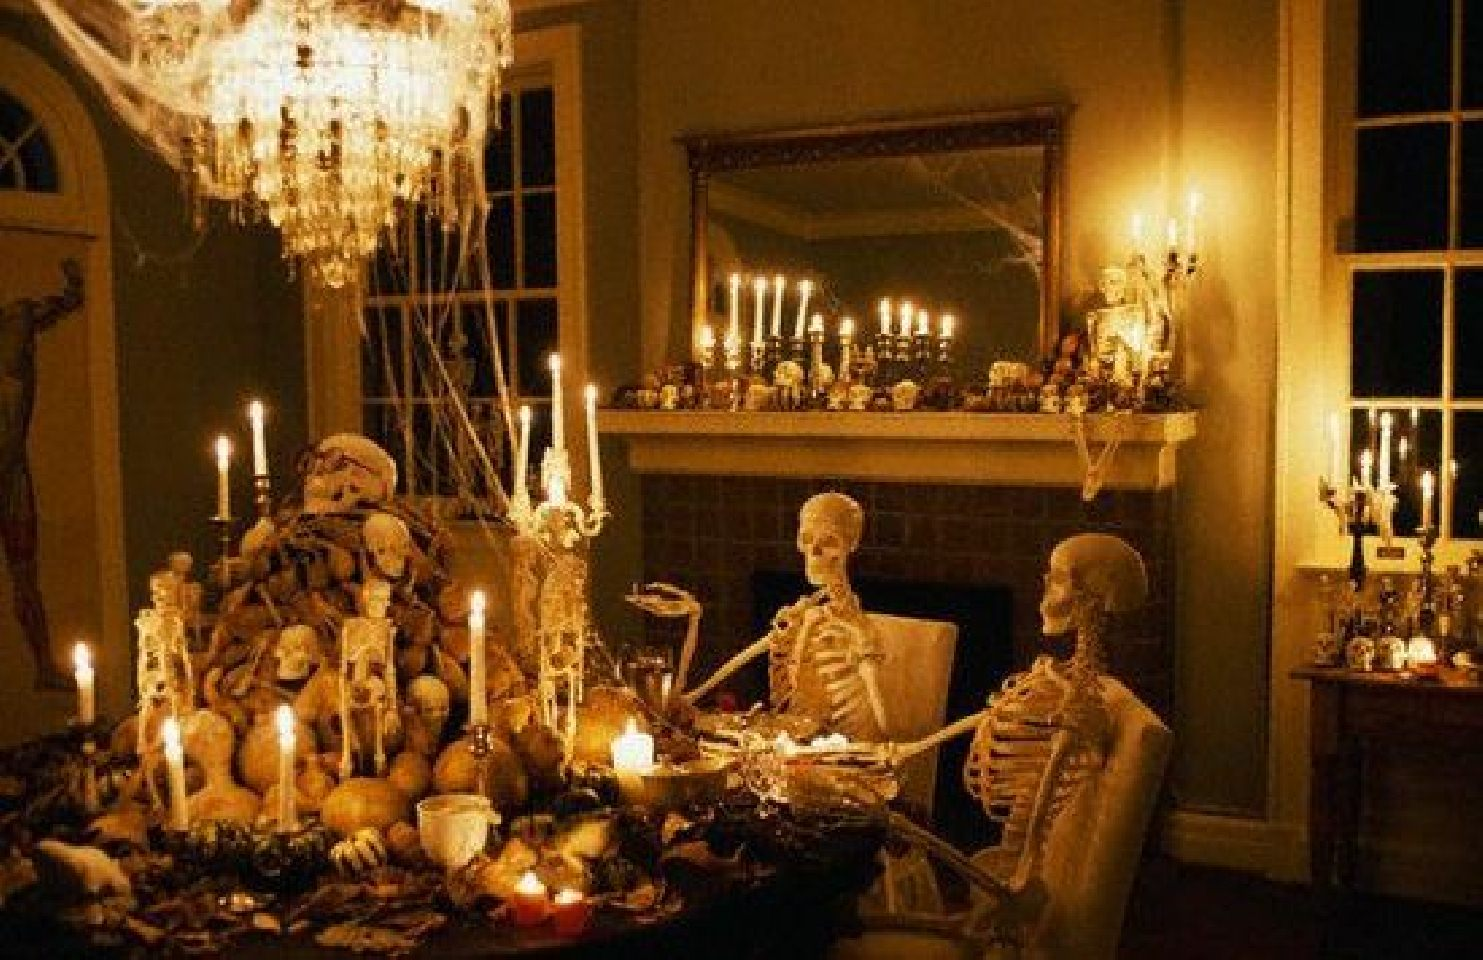 House decoration ideas 2017 for halloween party lighting d cor halloween party ideas Room decorating games for adults